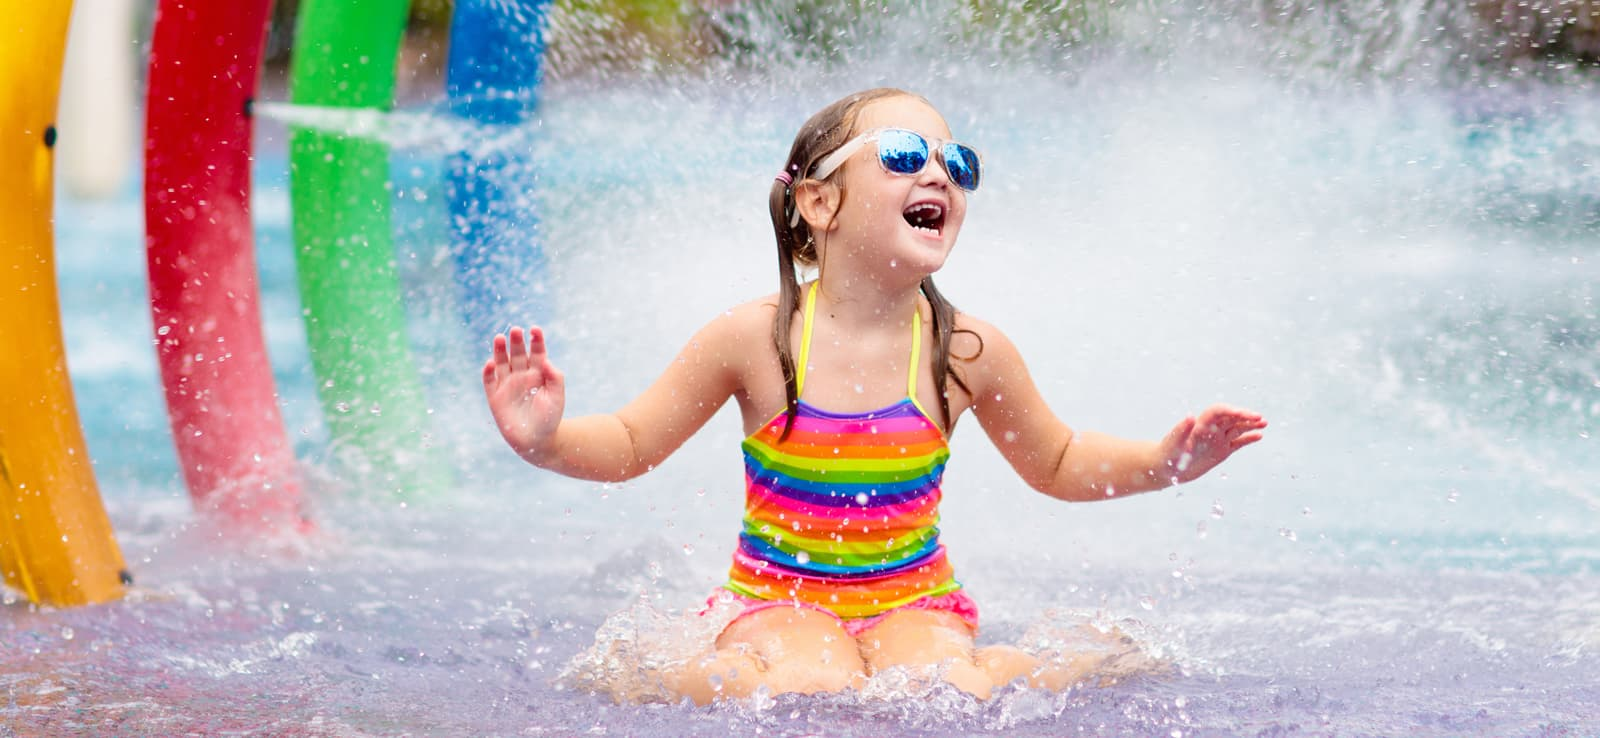 girl wearing sunglasses getting splashed at waterpark